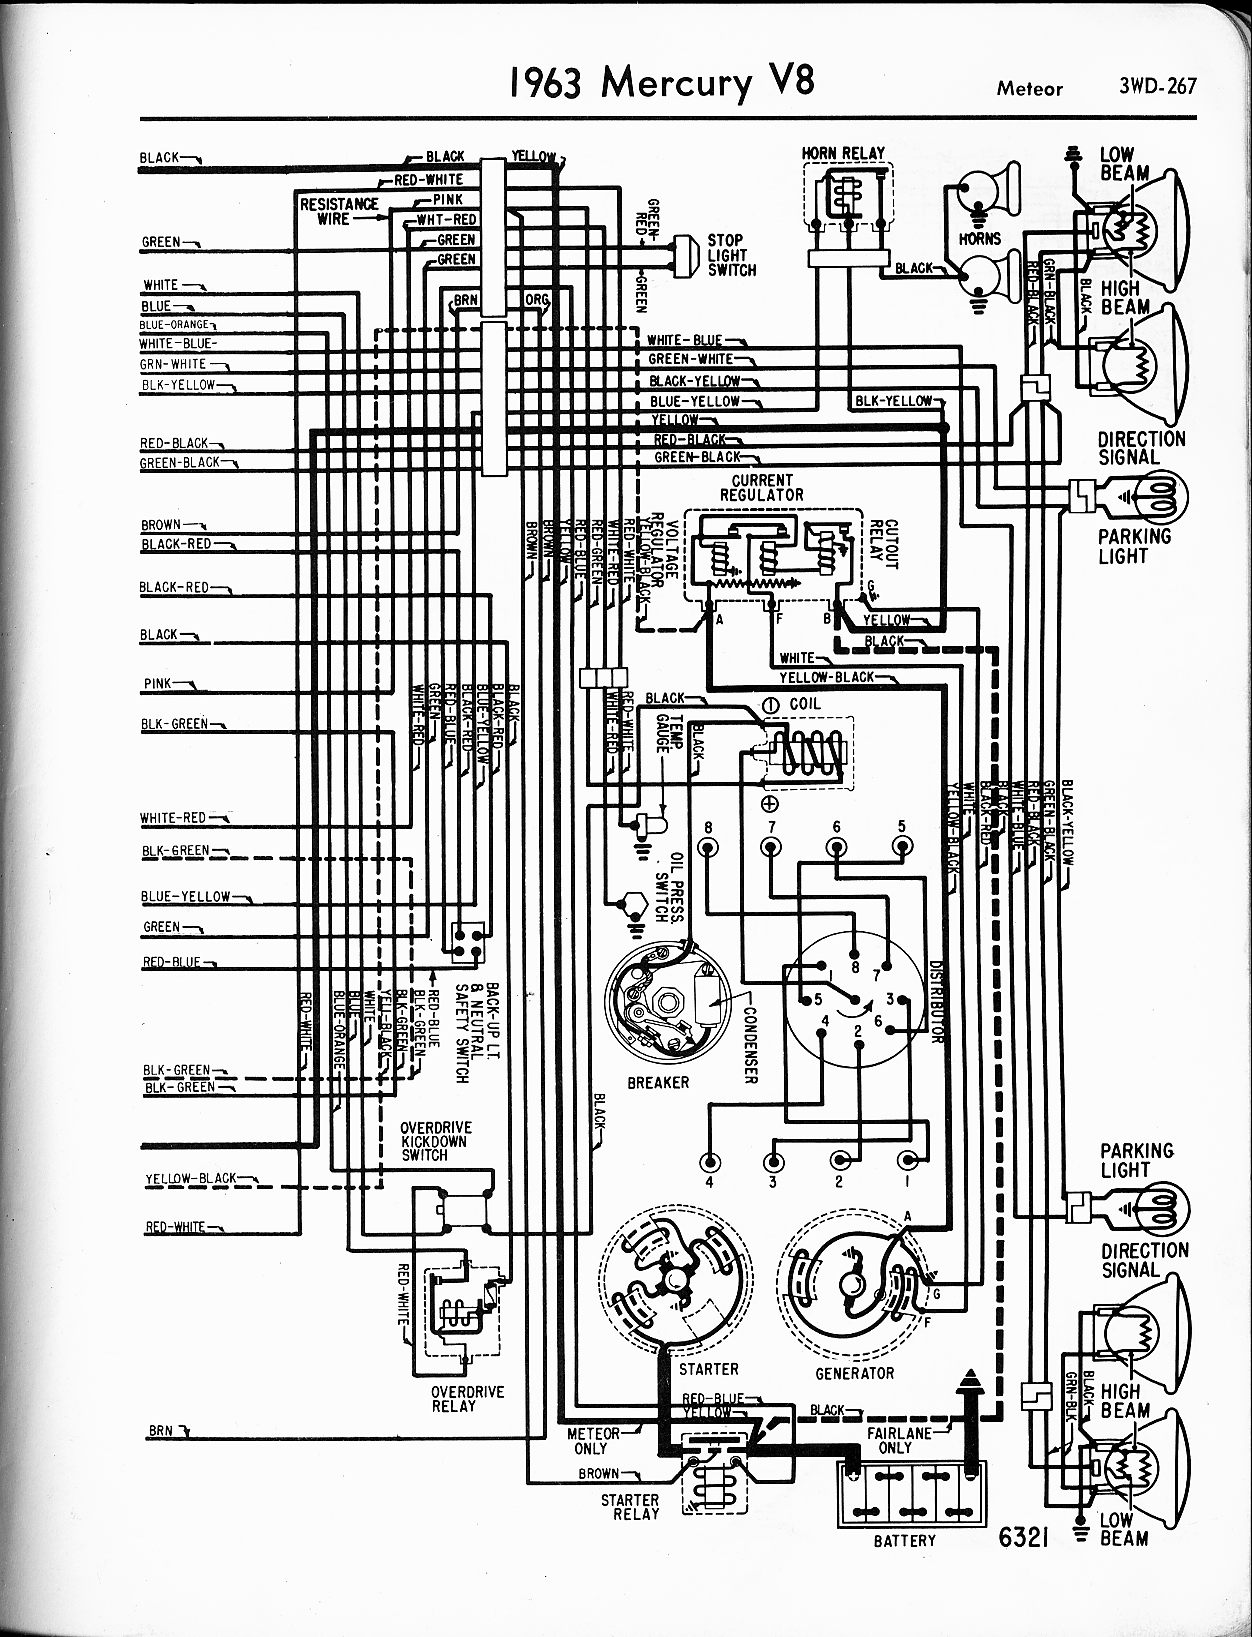 1963 mercury monterey wiring diagram schematic wiring diagrams \u2022 1948 mercury 1963 mercury monterey wiring diagram